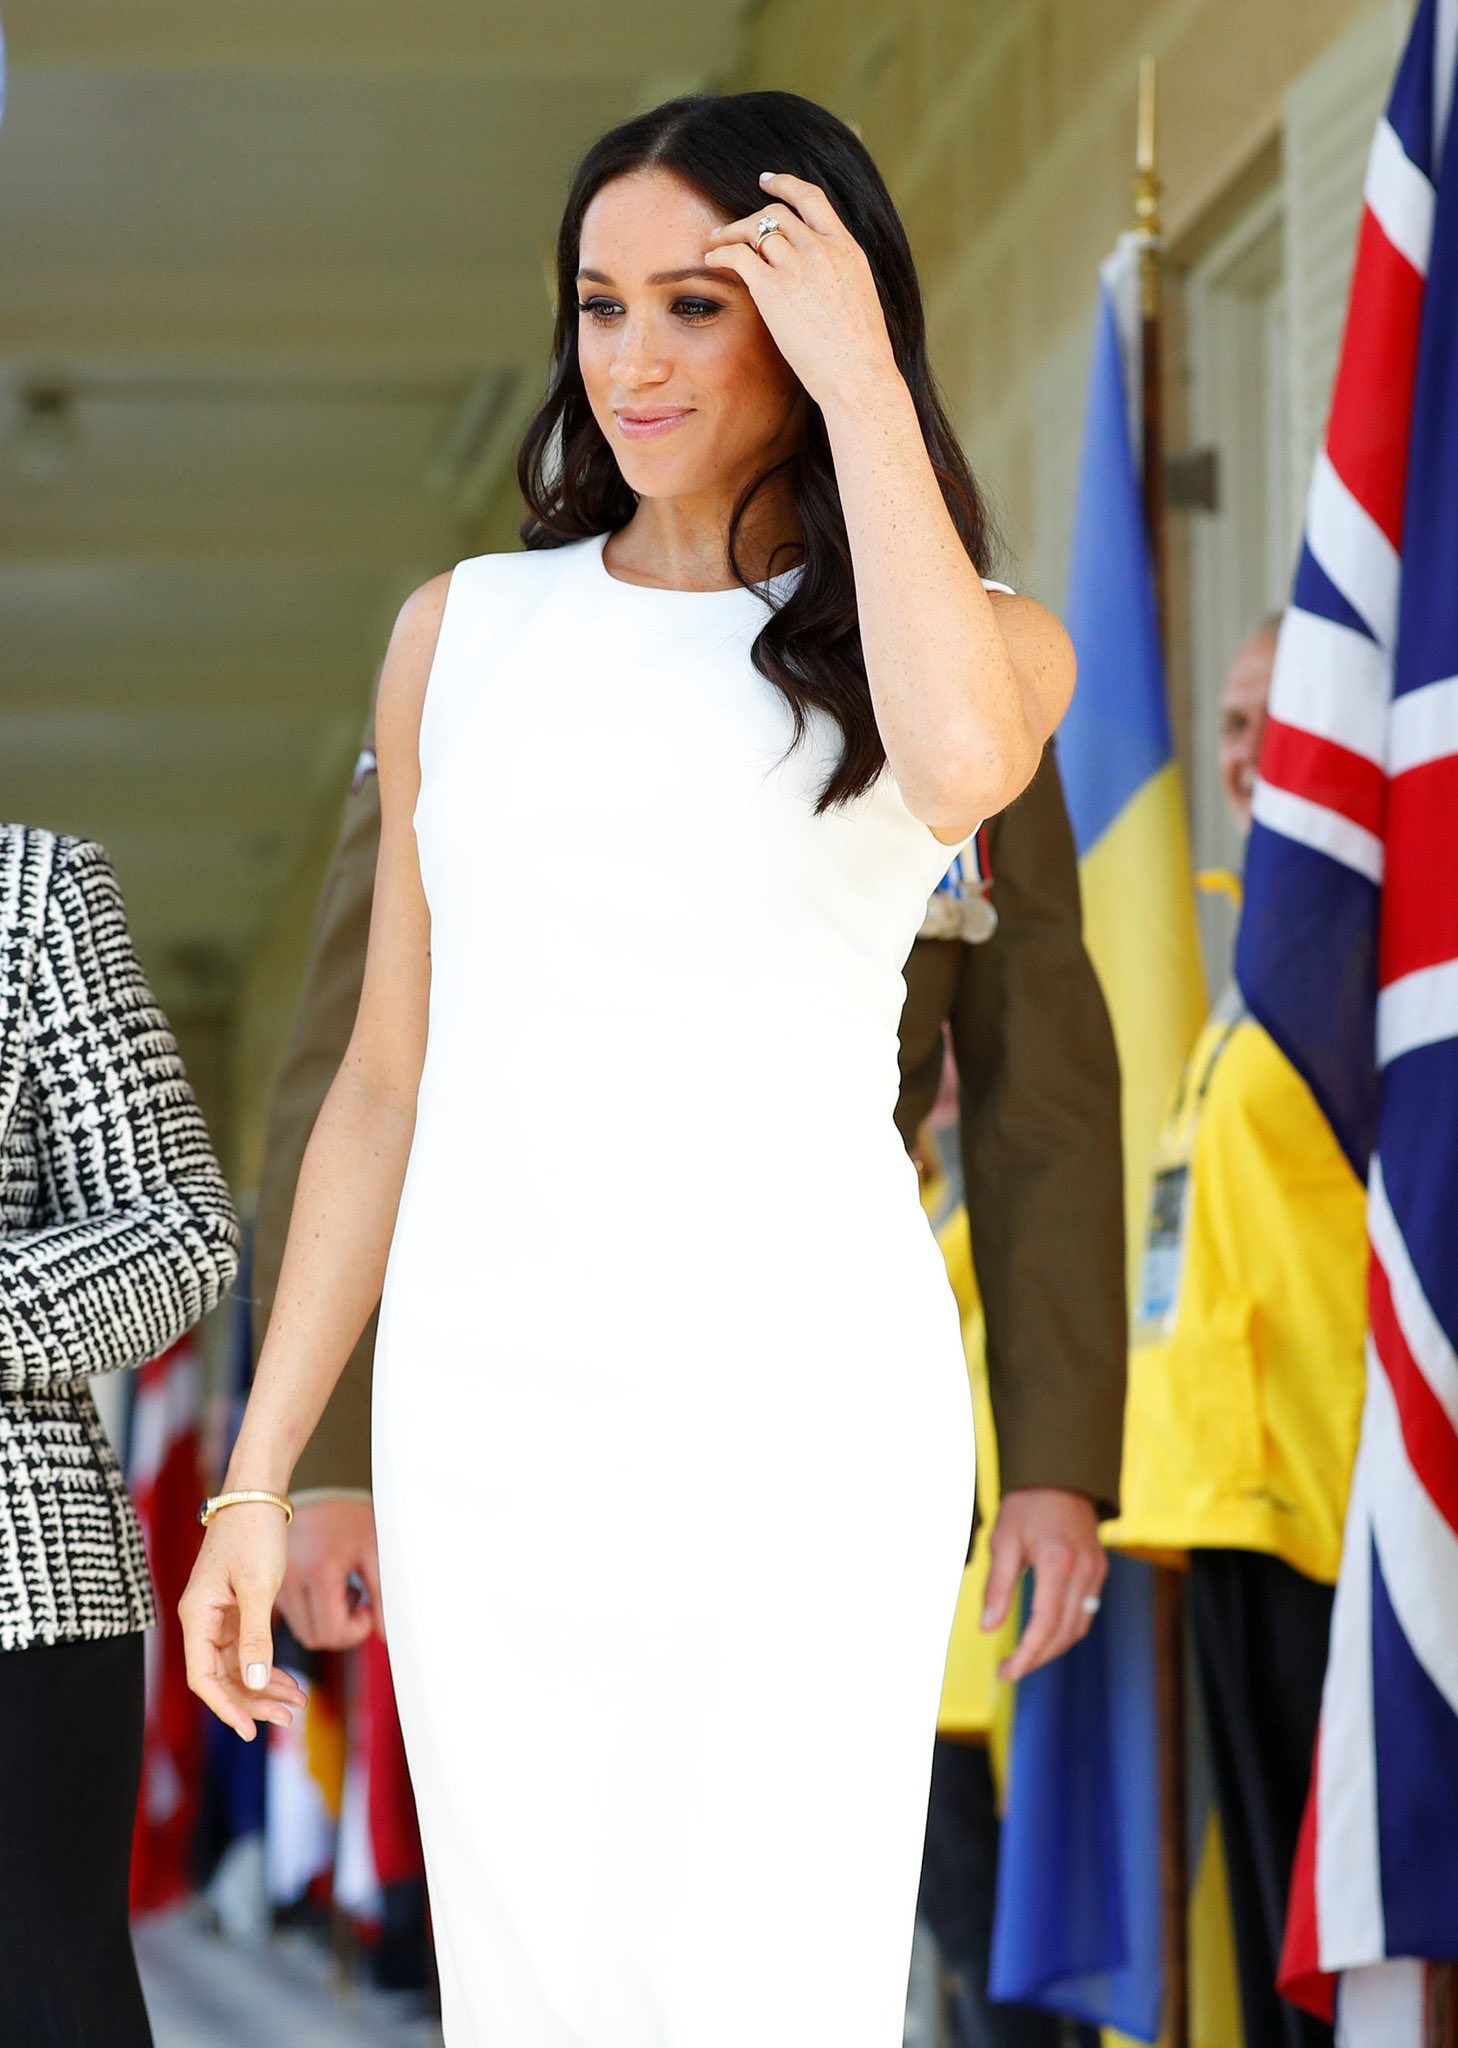 96aef483b53f The most significant part of Meghan s outfit was her jewelry – butterfly  stud earrings and a coordinating bangle